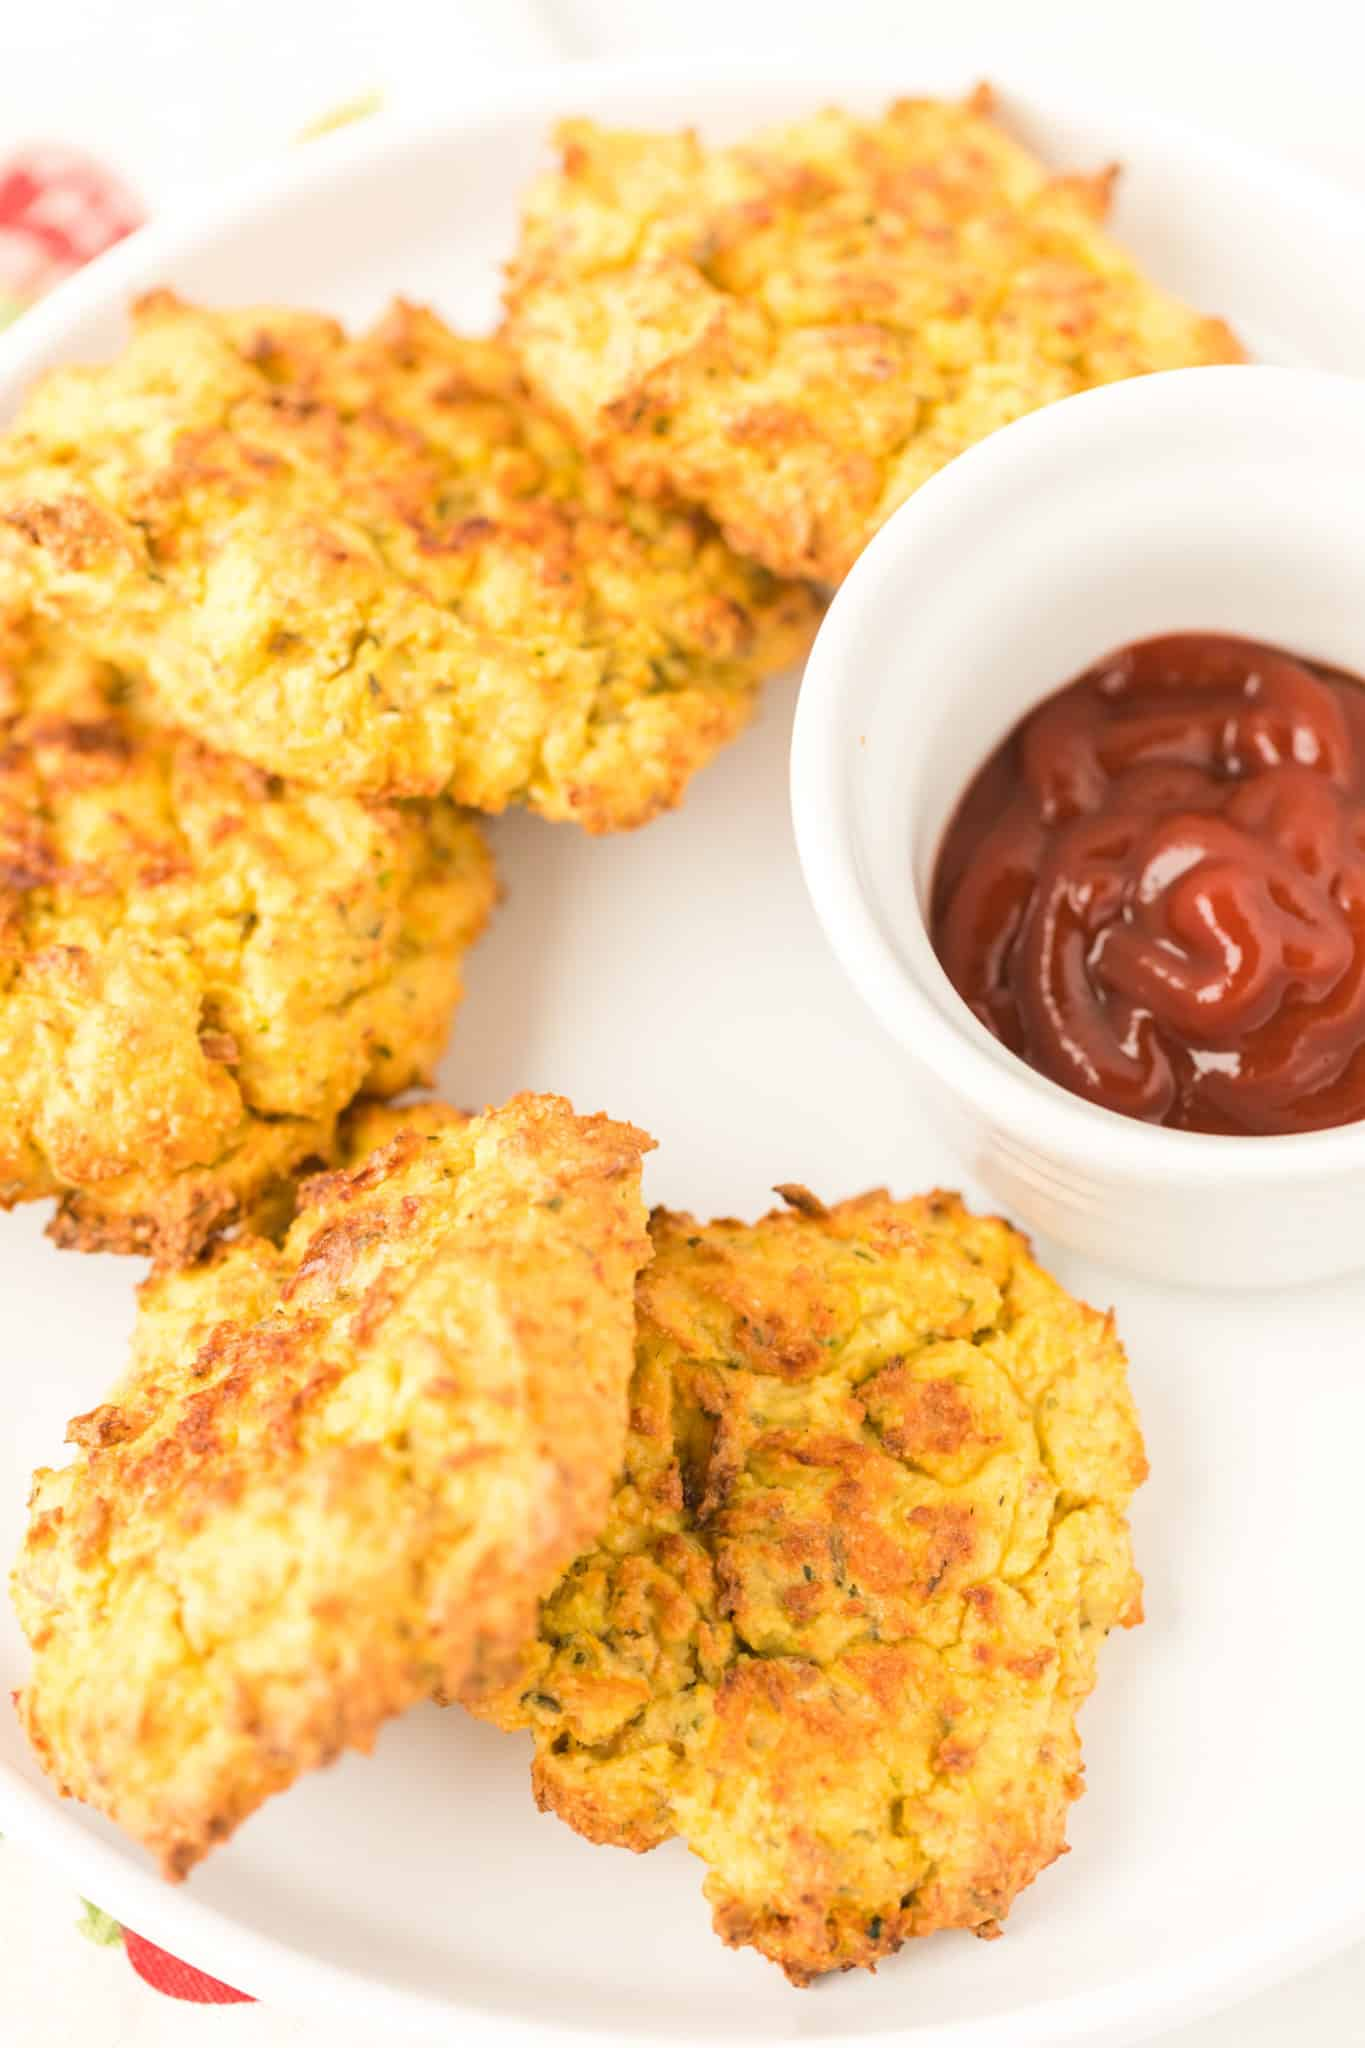 plate of potato fritters with ketchup